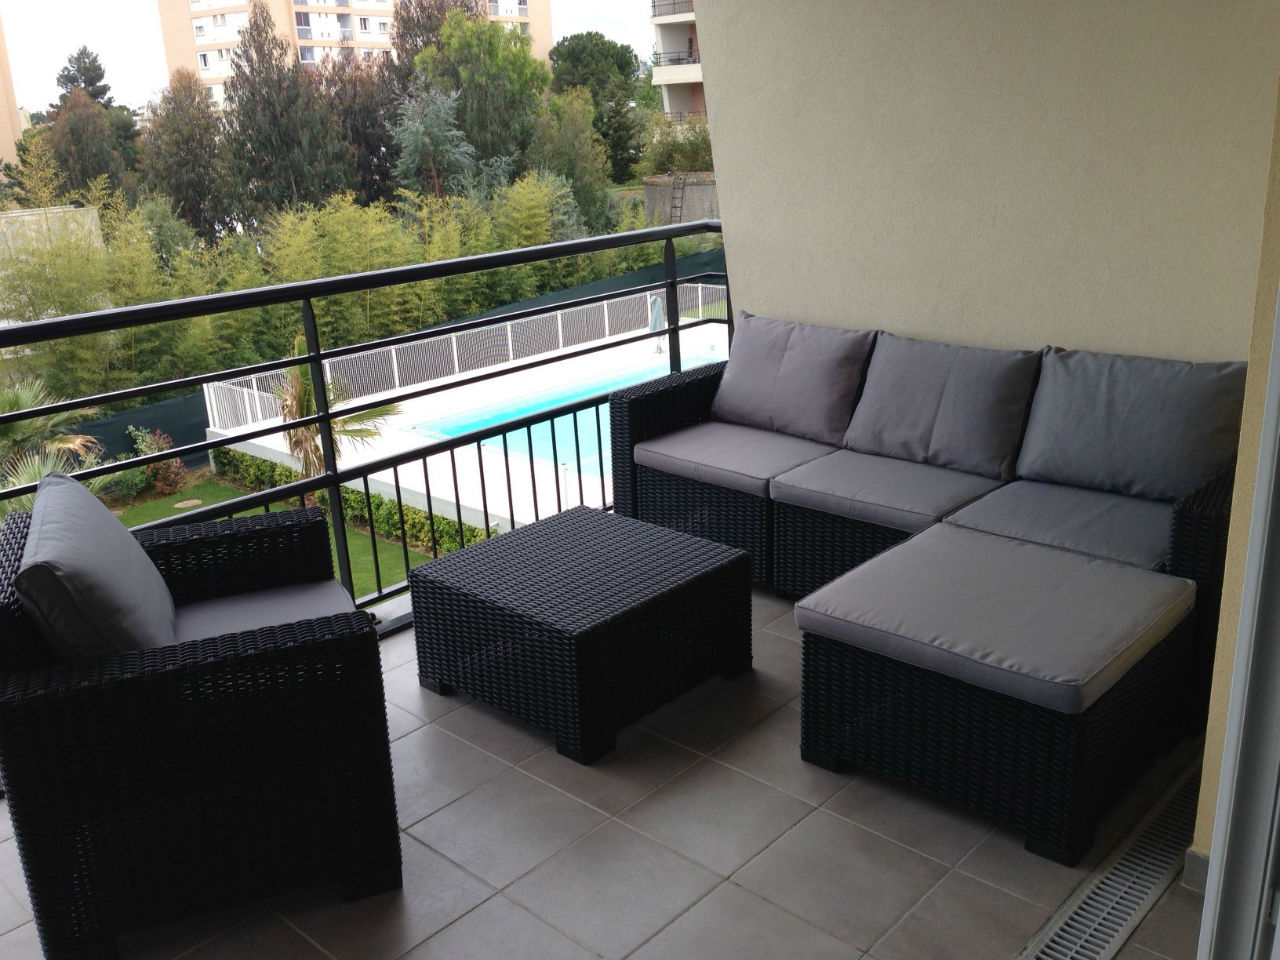 Salon Jardin Modulable Best Of Salon Exterieur Terrasse Of 32 Beau Salon Jardin Modulable